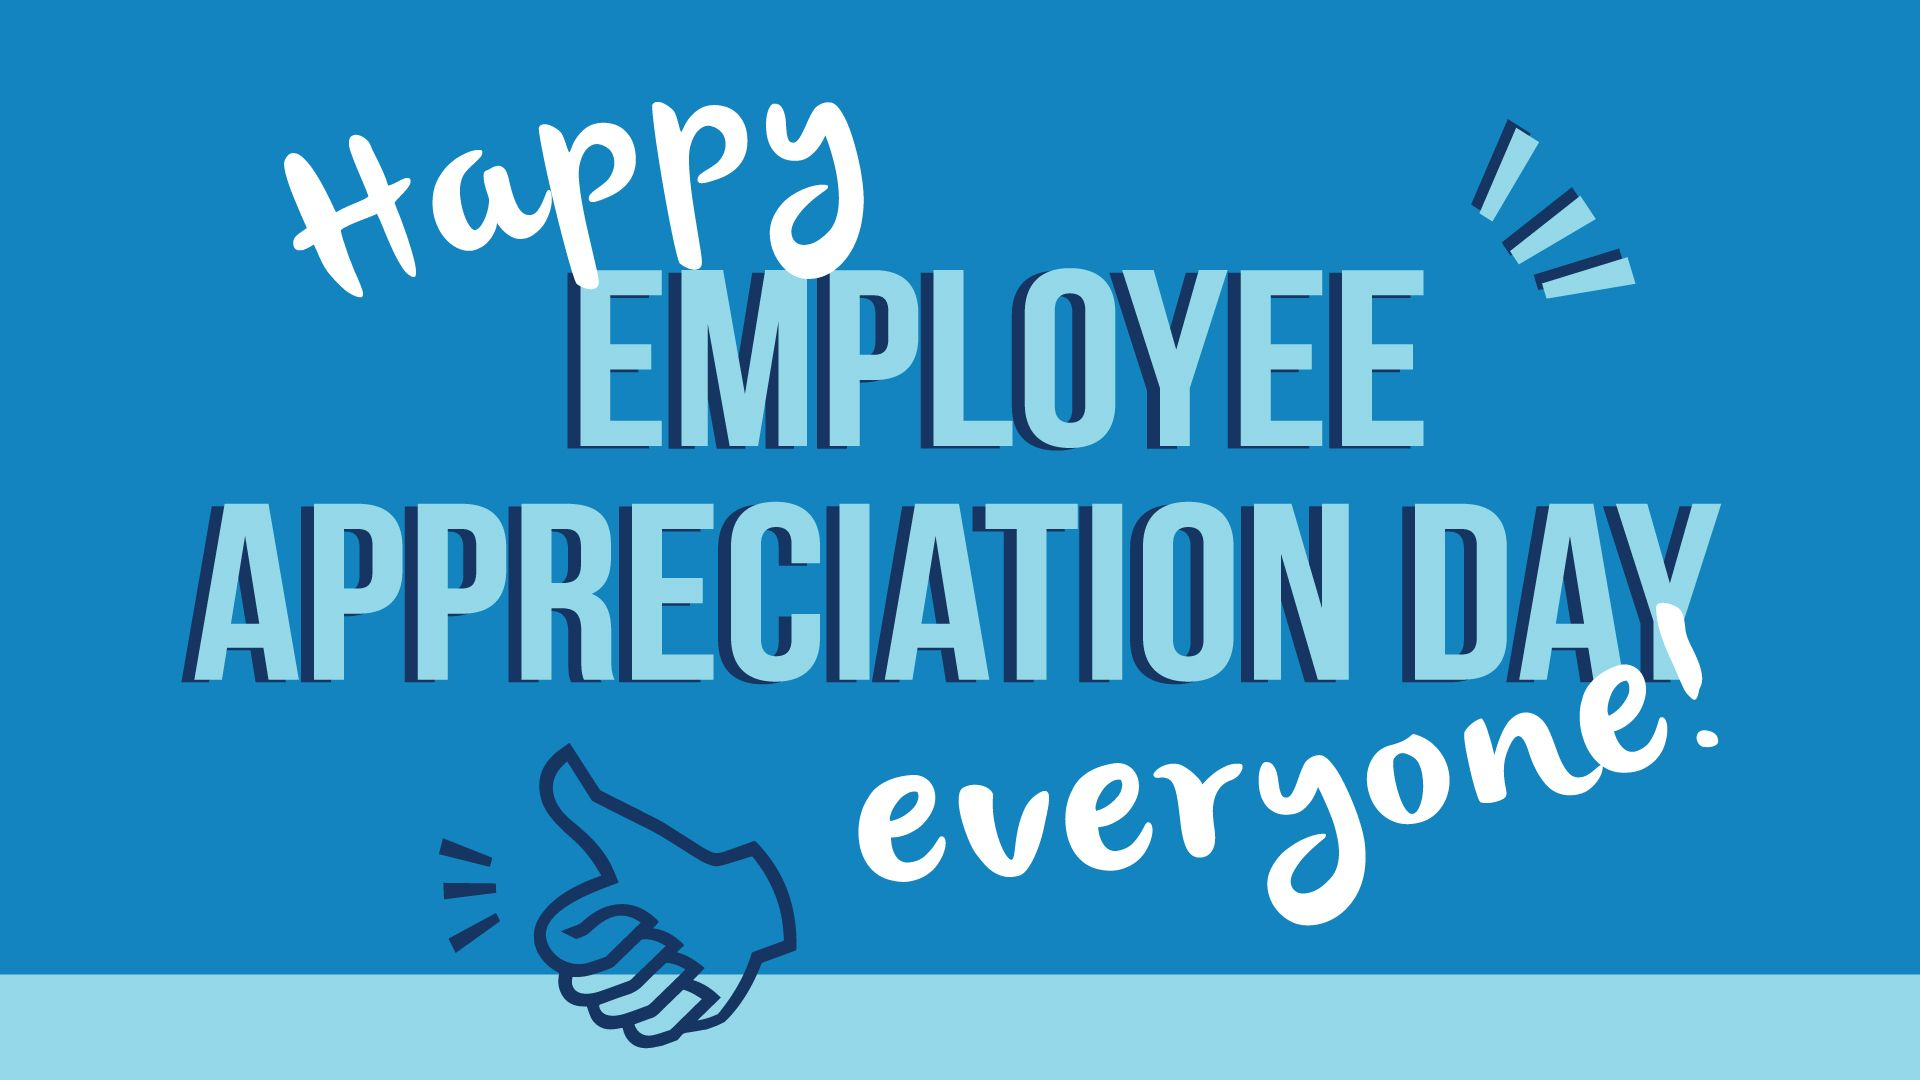 Happy Employee Appreciation Day! Brown Insurance Group has